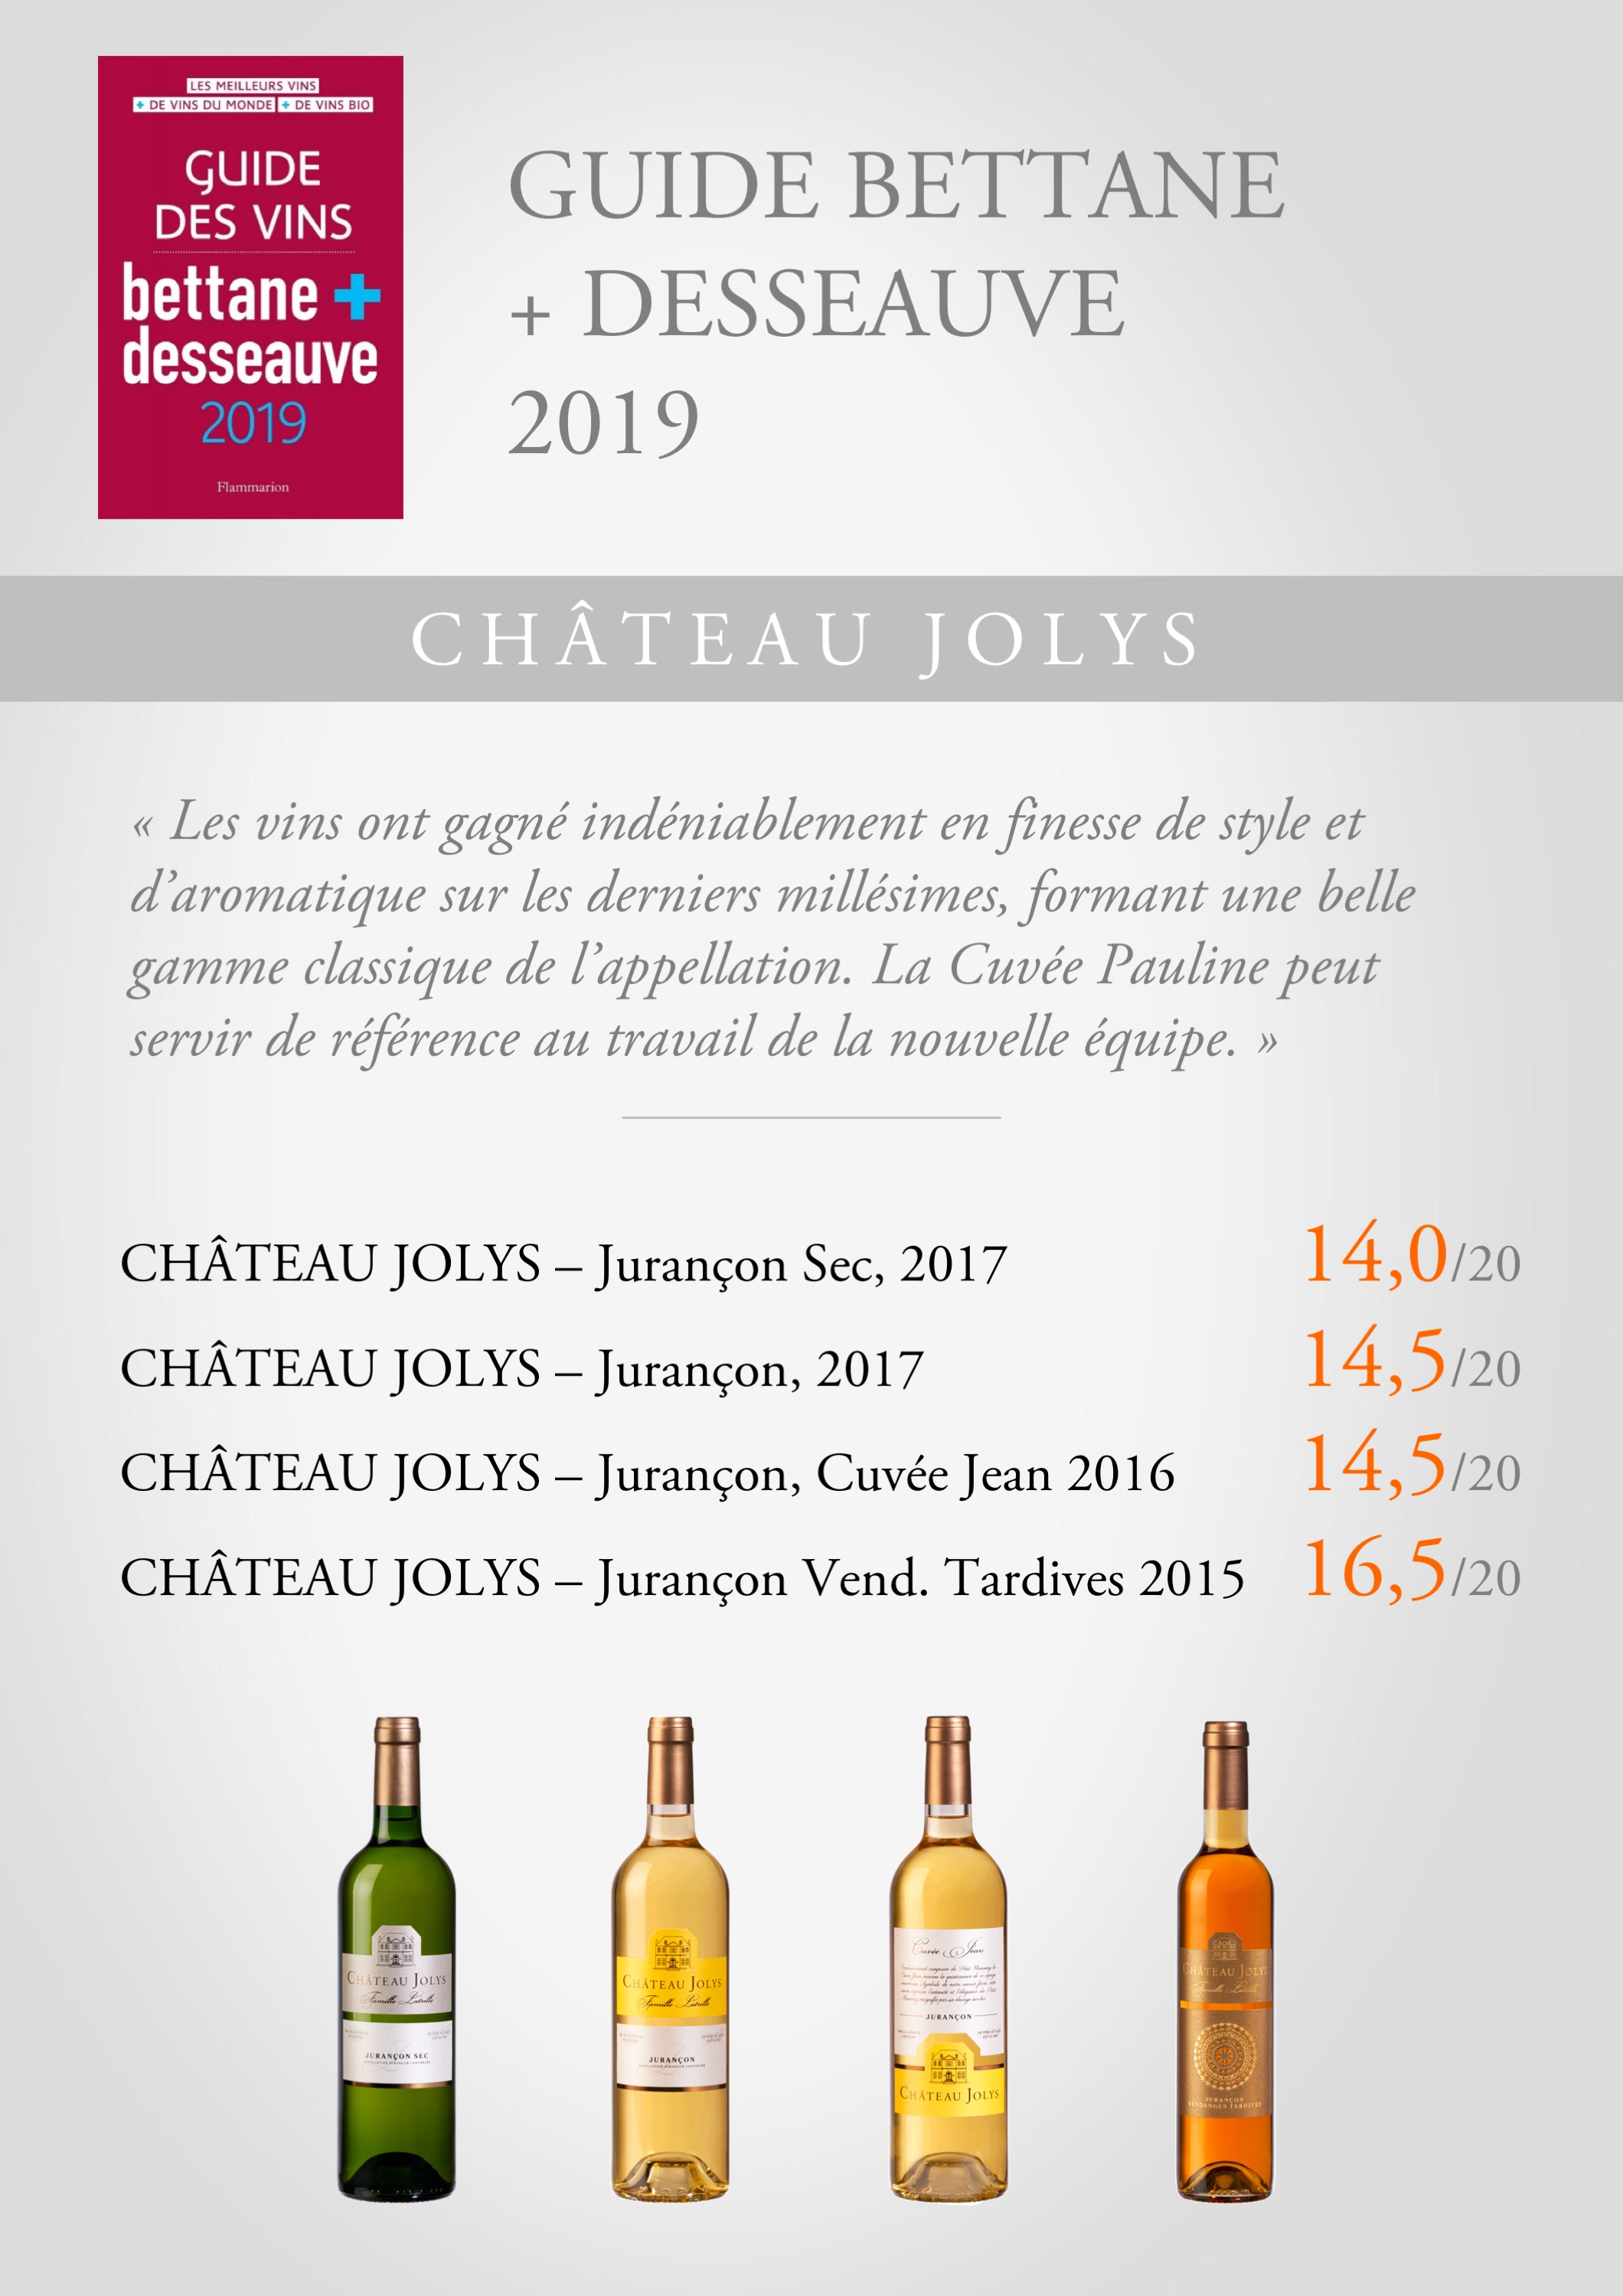 Guide Bettane + Desseauve 2019 Chateau Jolys